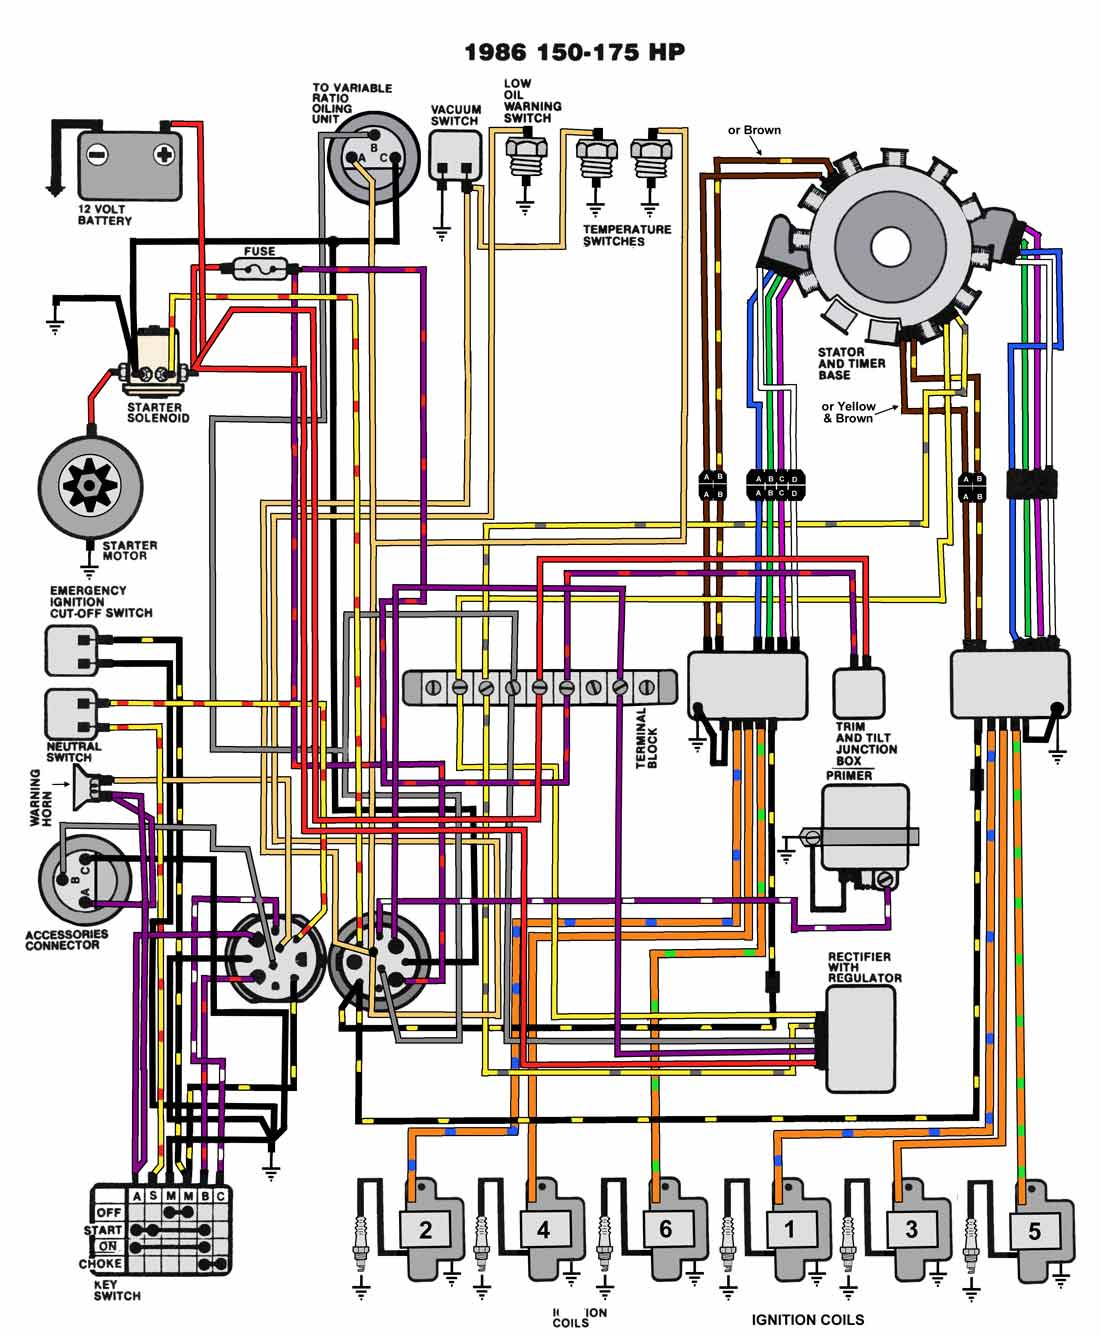 Evinrude Ignition Switch Wiring Diagram | 1985 Evinrude Ignition Switch Wiring Diagram Wiring Diagram Data